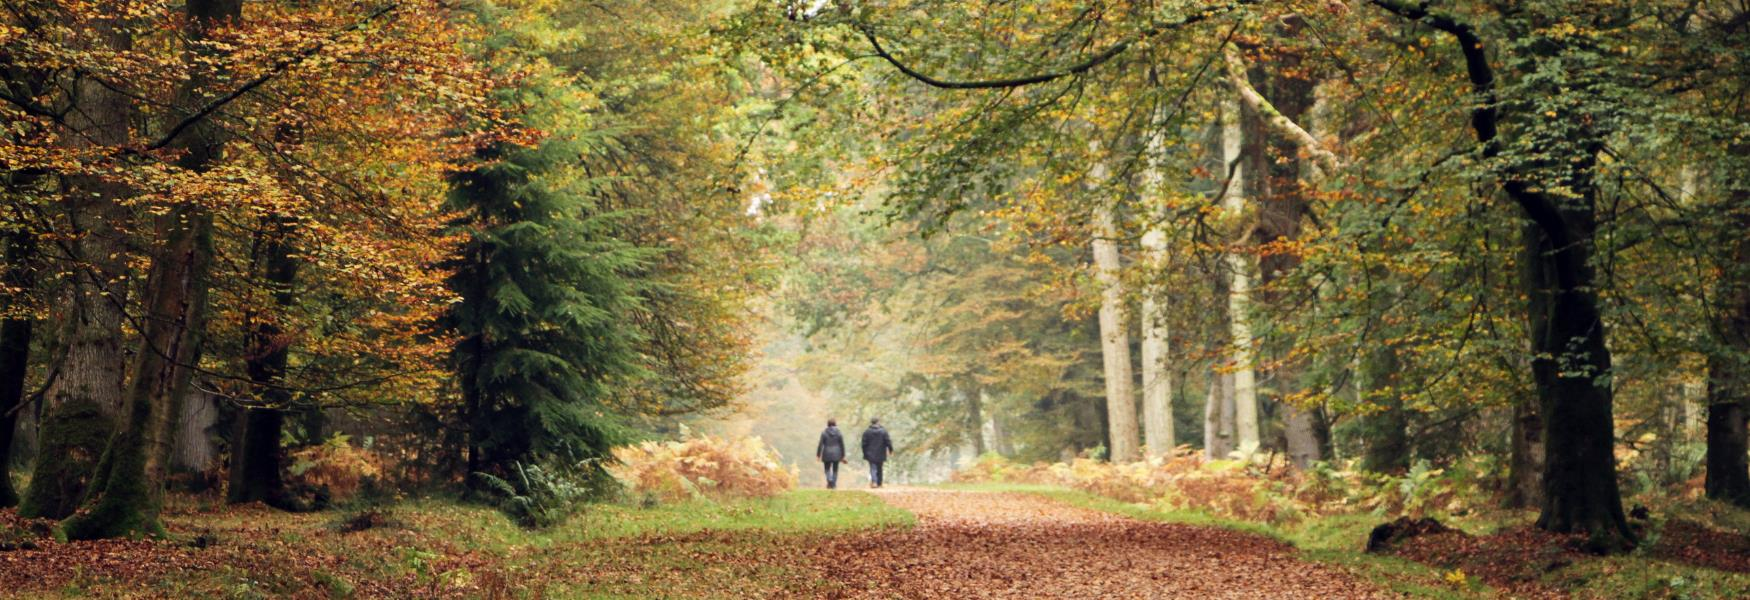 Walking through the fallen leaves in autumn in the new forest